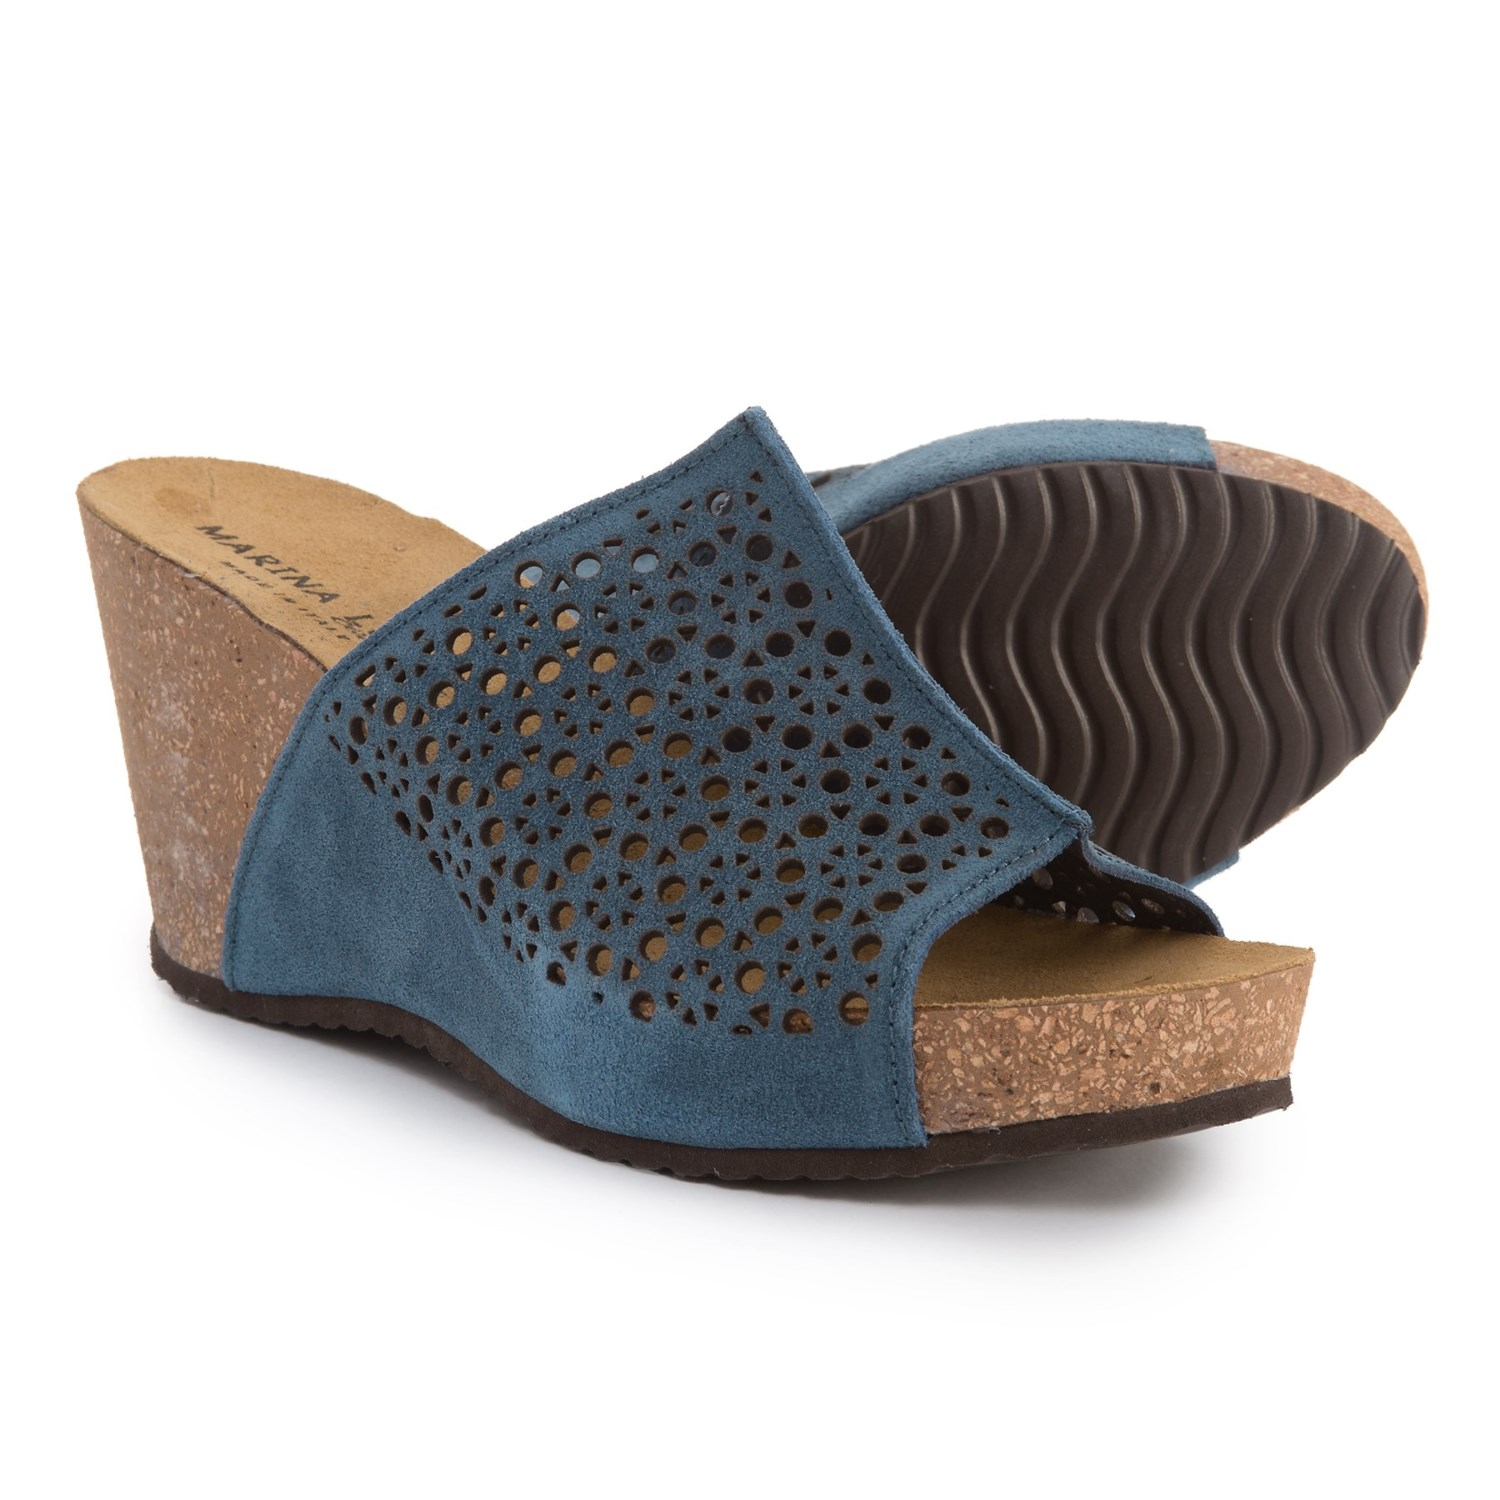 99082c99e0 Marina Luna Comfort Made in Italy Perforated Wedge Sandals - Suede ...